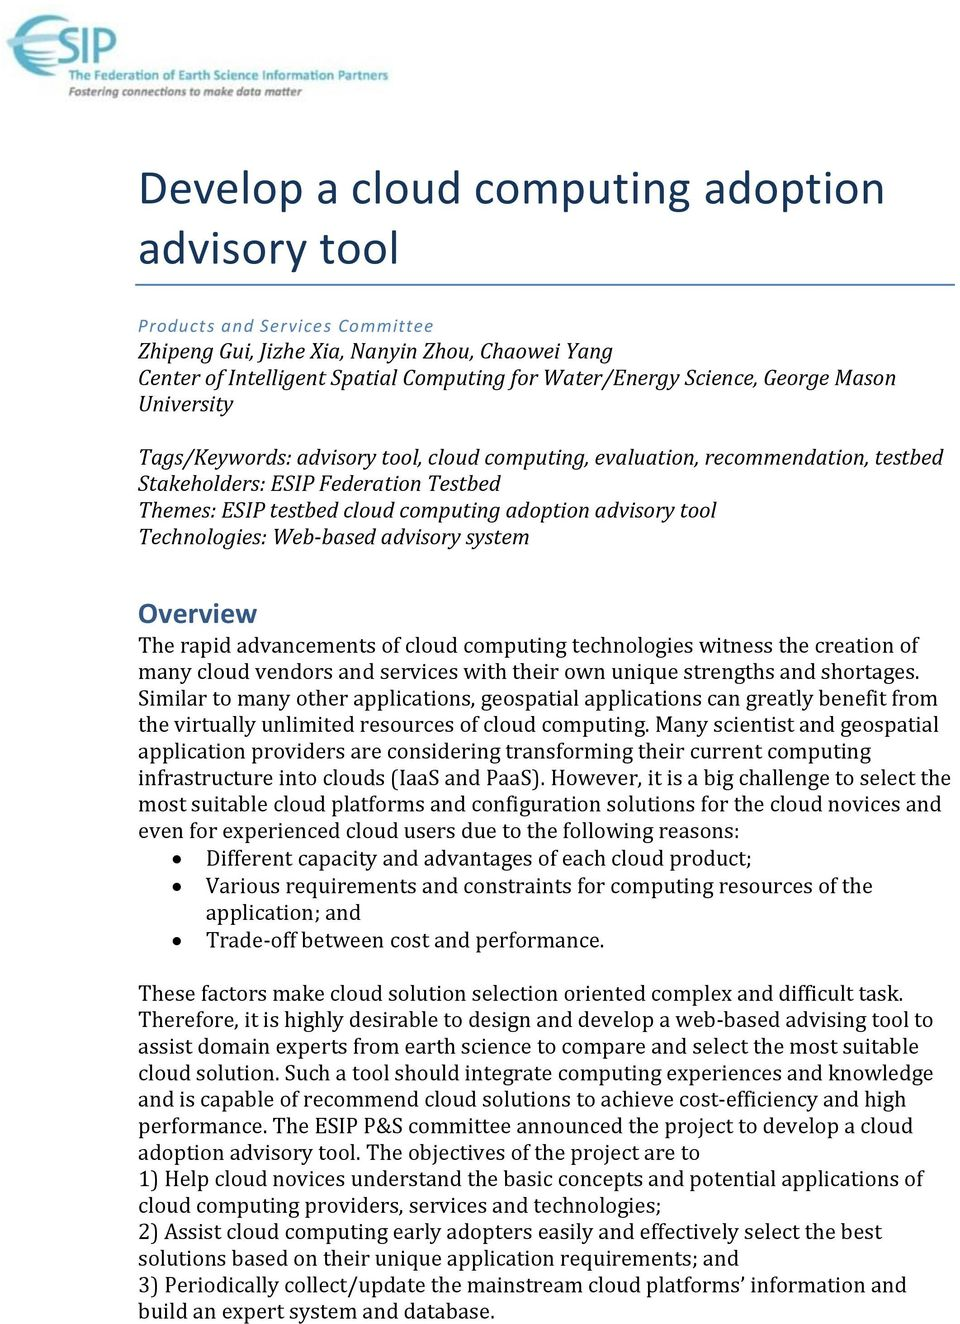 tool Technologies: Web-based advisory system Overview The rapid advancements of cloud computing technologies witness the creation of many cloud vendors and services with their own unique strengths